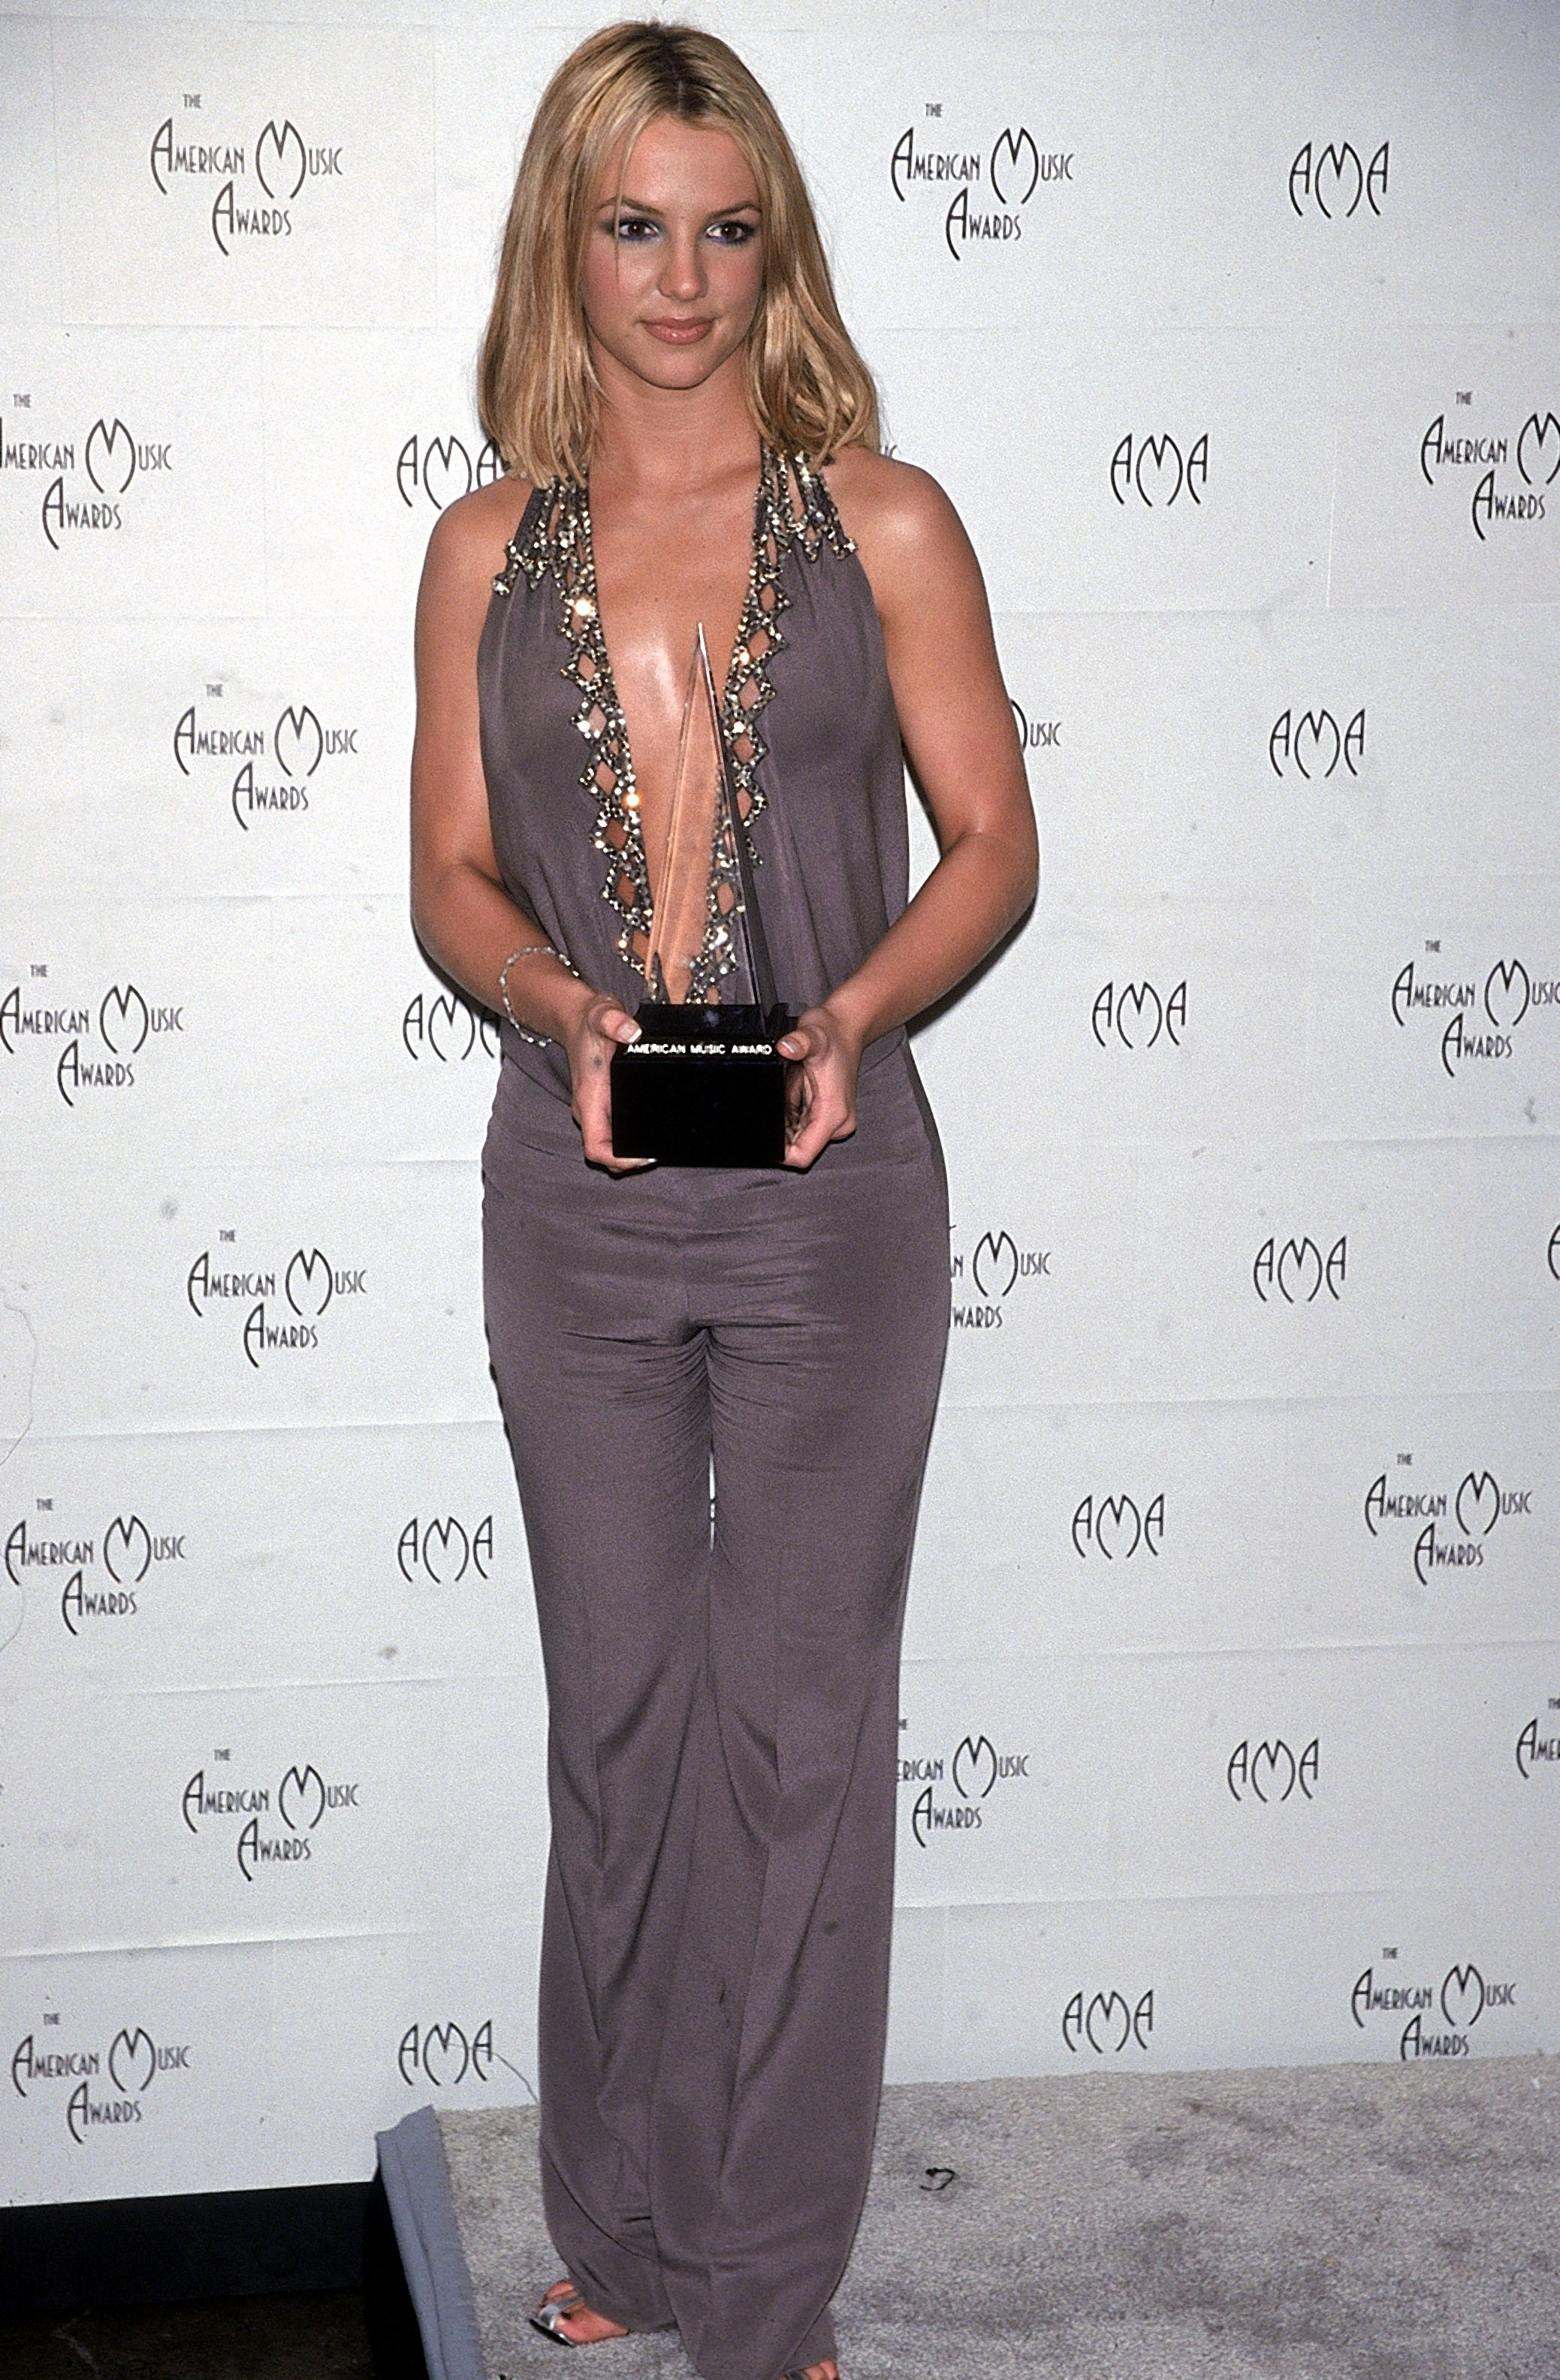 The ascent of the jumpsuit on the red carpet really took flight in the early aughts with clubby, costumey designs. To wit: This picture of Britney may have been taken at the American Music Awards, but we wouldn't be surprised if she wore something similar on-stage.